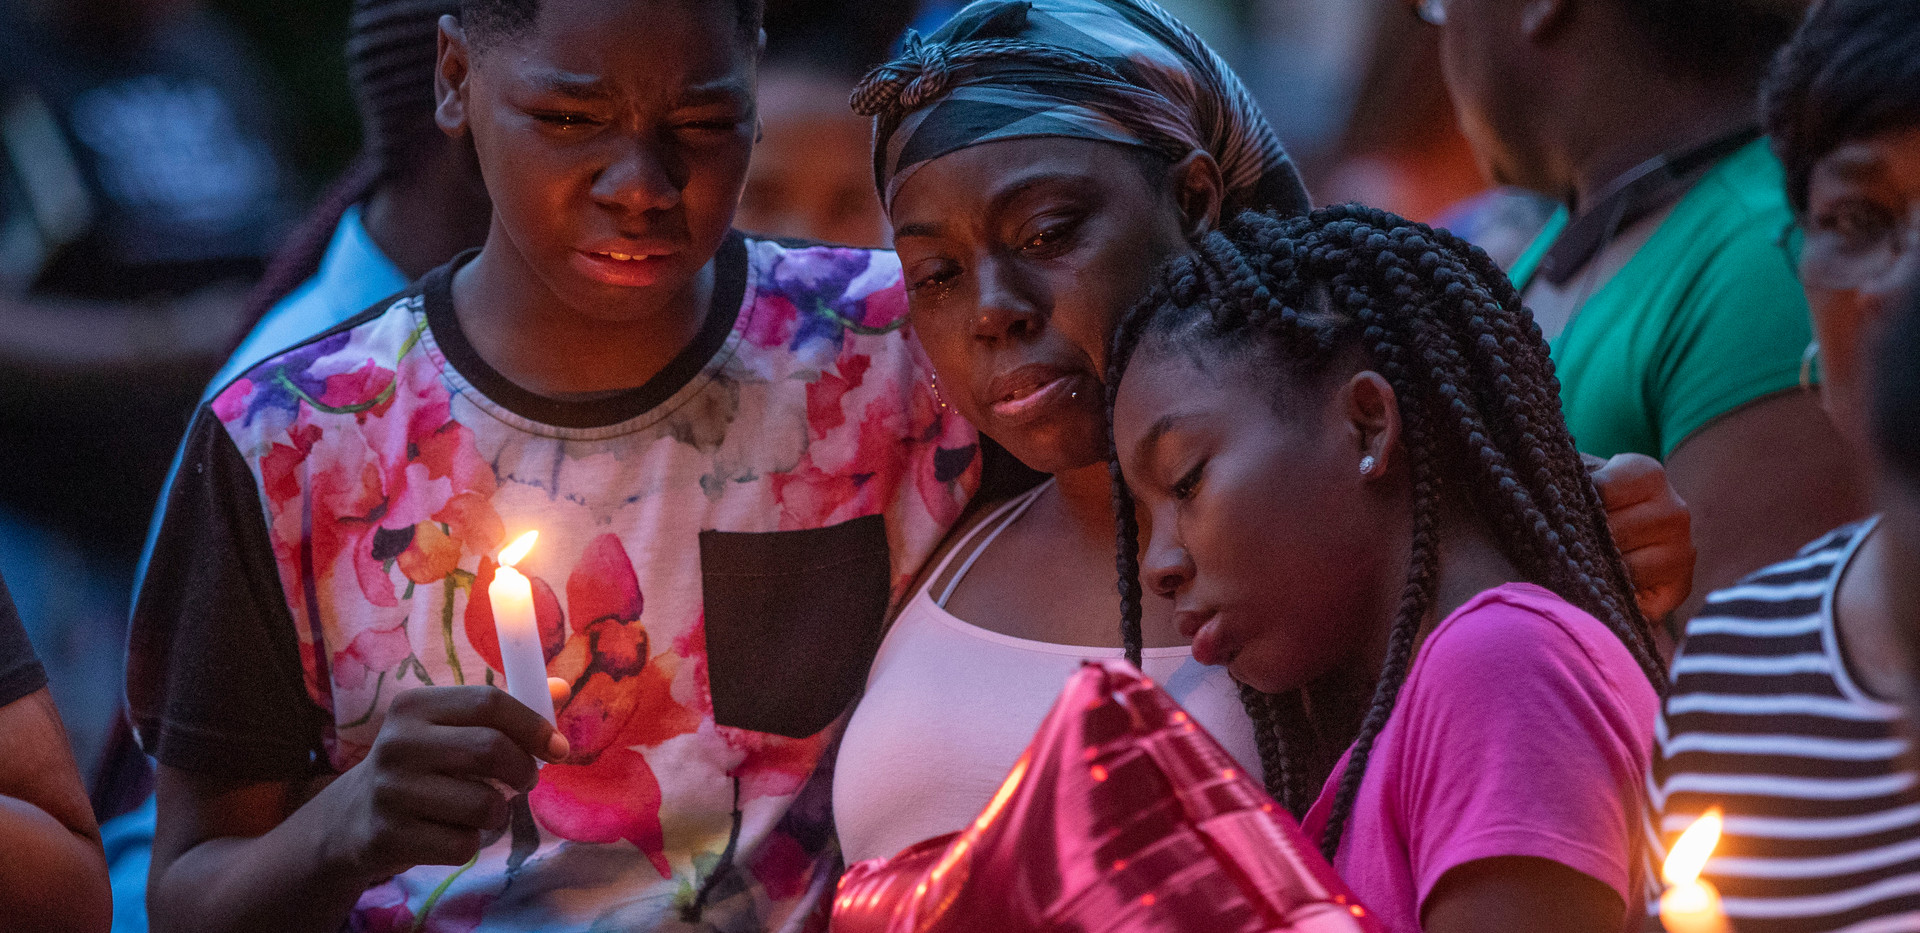 A crowd gathers as a candlelight vigil is held honoring Malik Jackson, 21, who was stabbed and killed on Wednesday, May 27, 2020. Jackson's younger brother cries as he holds a candle and stands with their mother Jennifer Jackson.